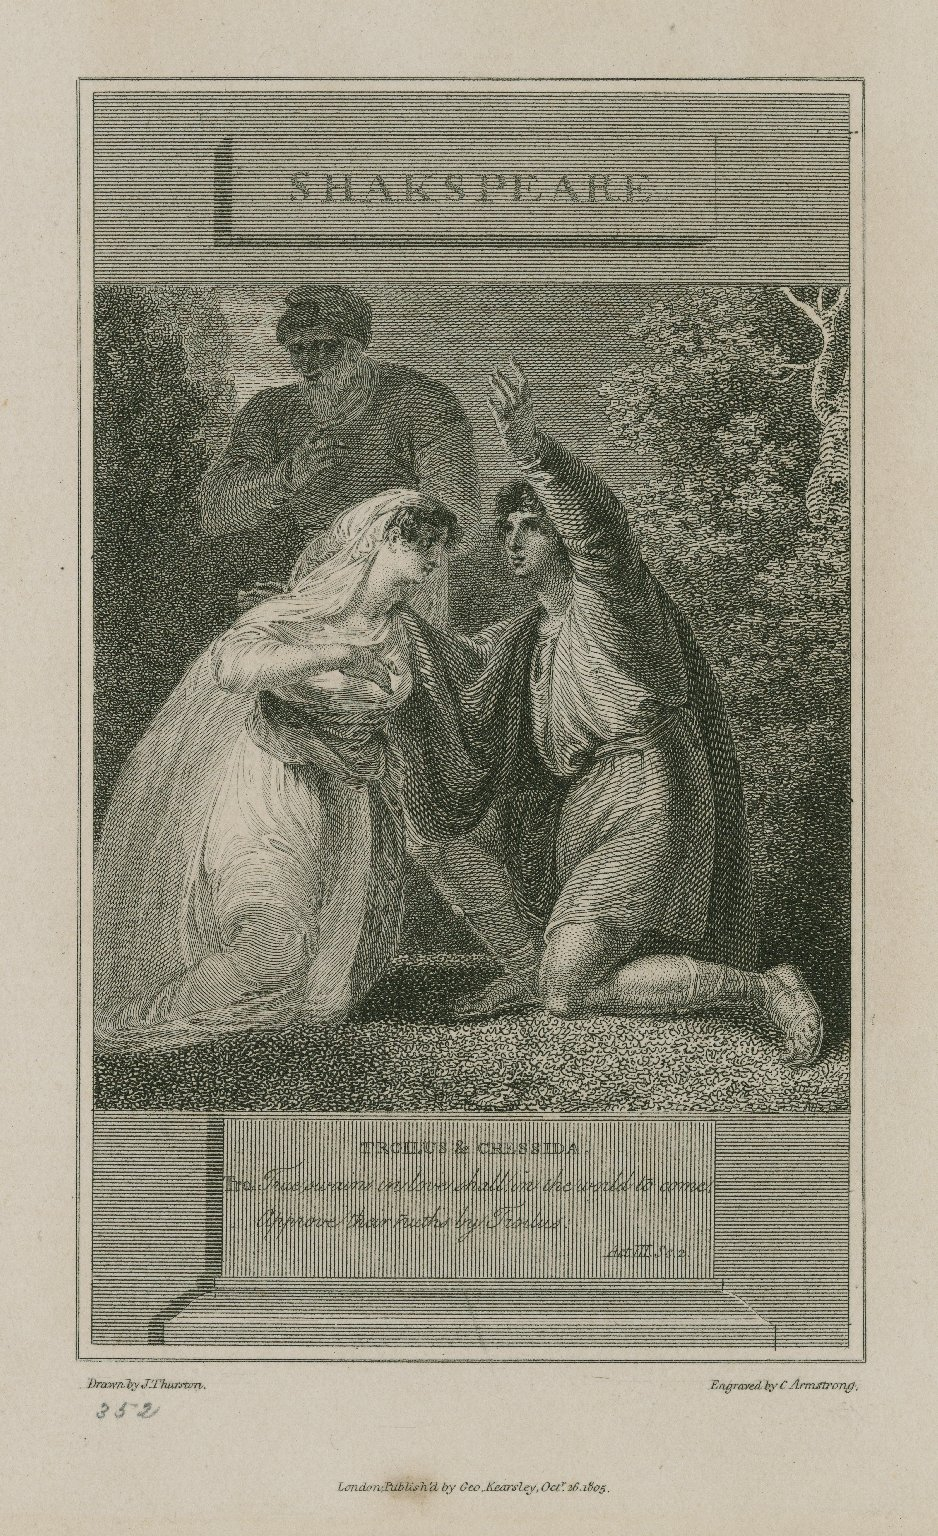 Troilus & Cressida, Tro.: True swains in love shall in the world to come approve their truths by Troilus, act 3, sc. 2 [graphic] / drawn by J. Thurston ; engraved by C. Armstrong.